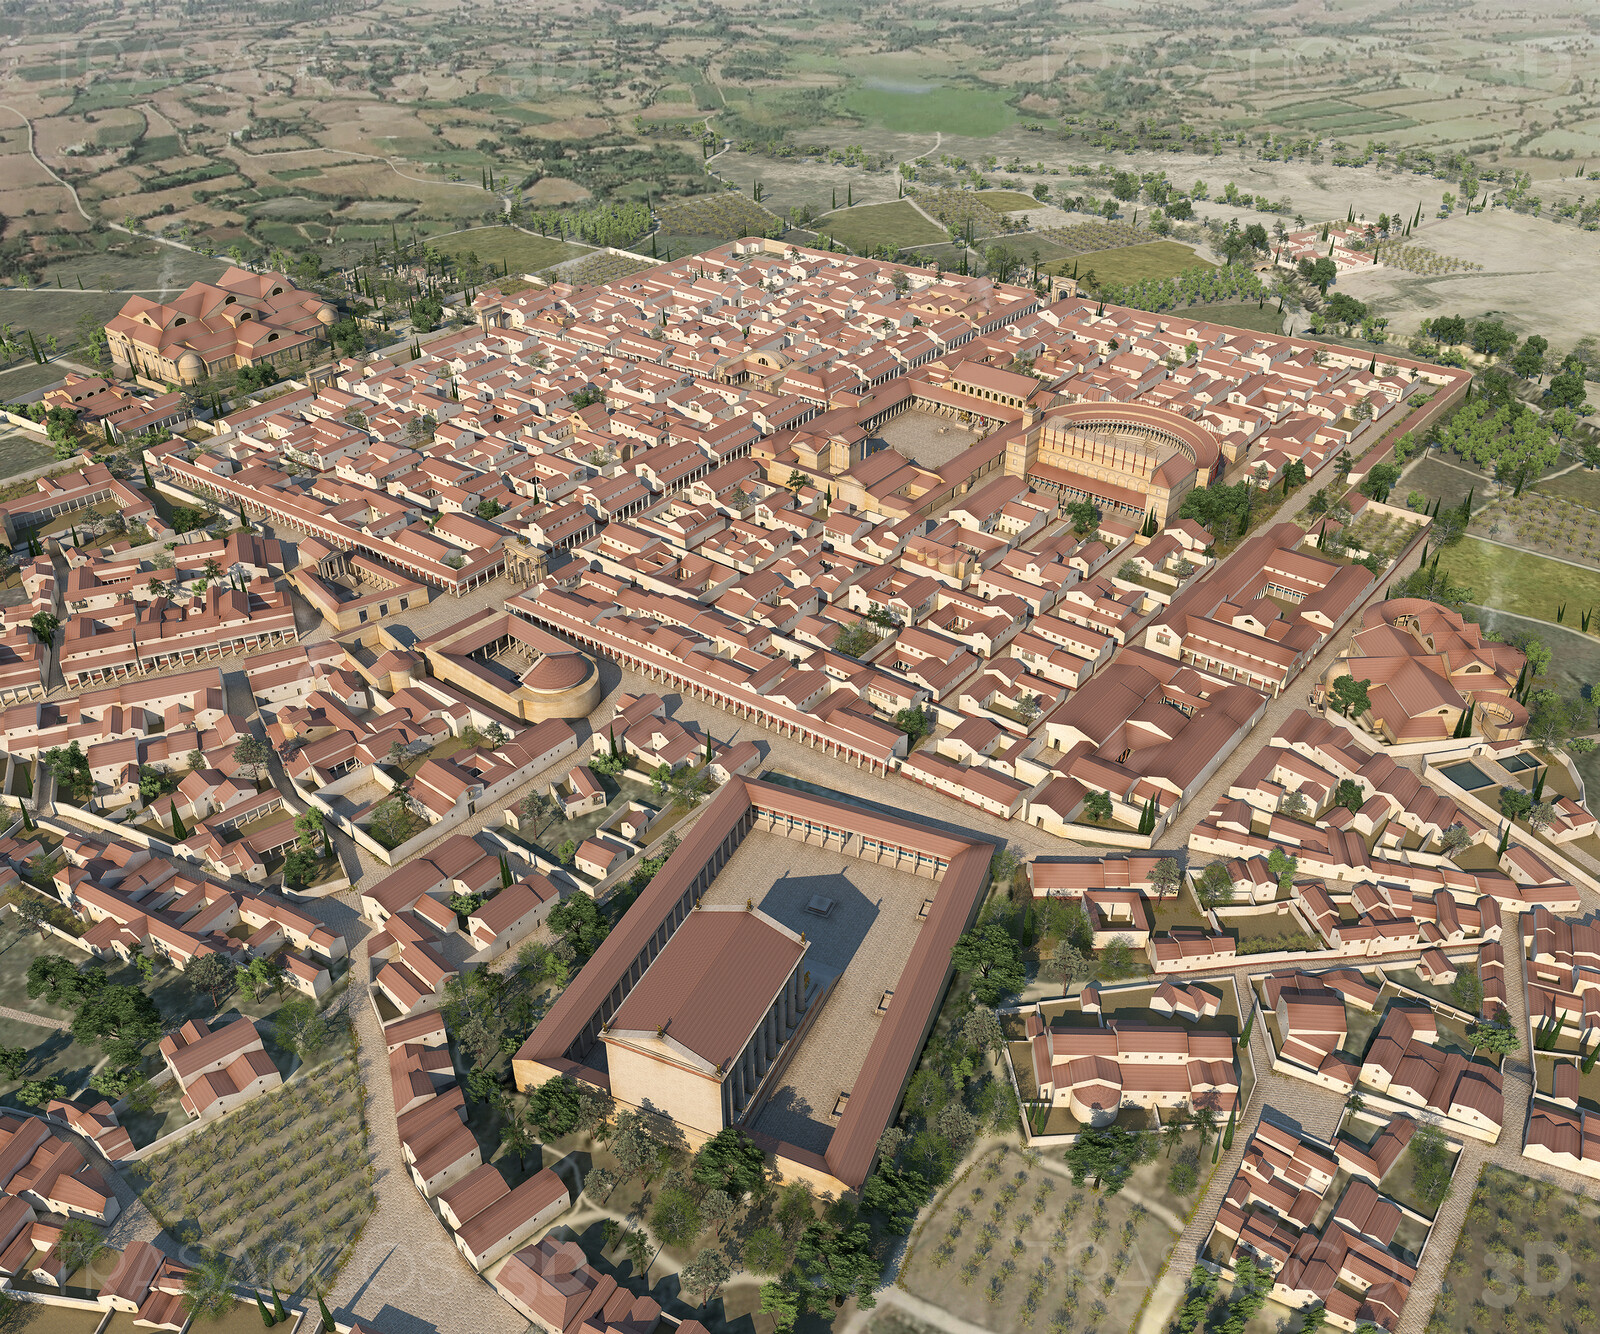 General view of the reconstructed roman city of Timgad. Modeled in collaboration with: - Andrés Armesto - Alejandro Soriano - Carlos Paz - Diego Blanco